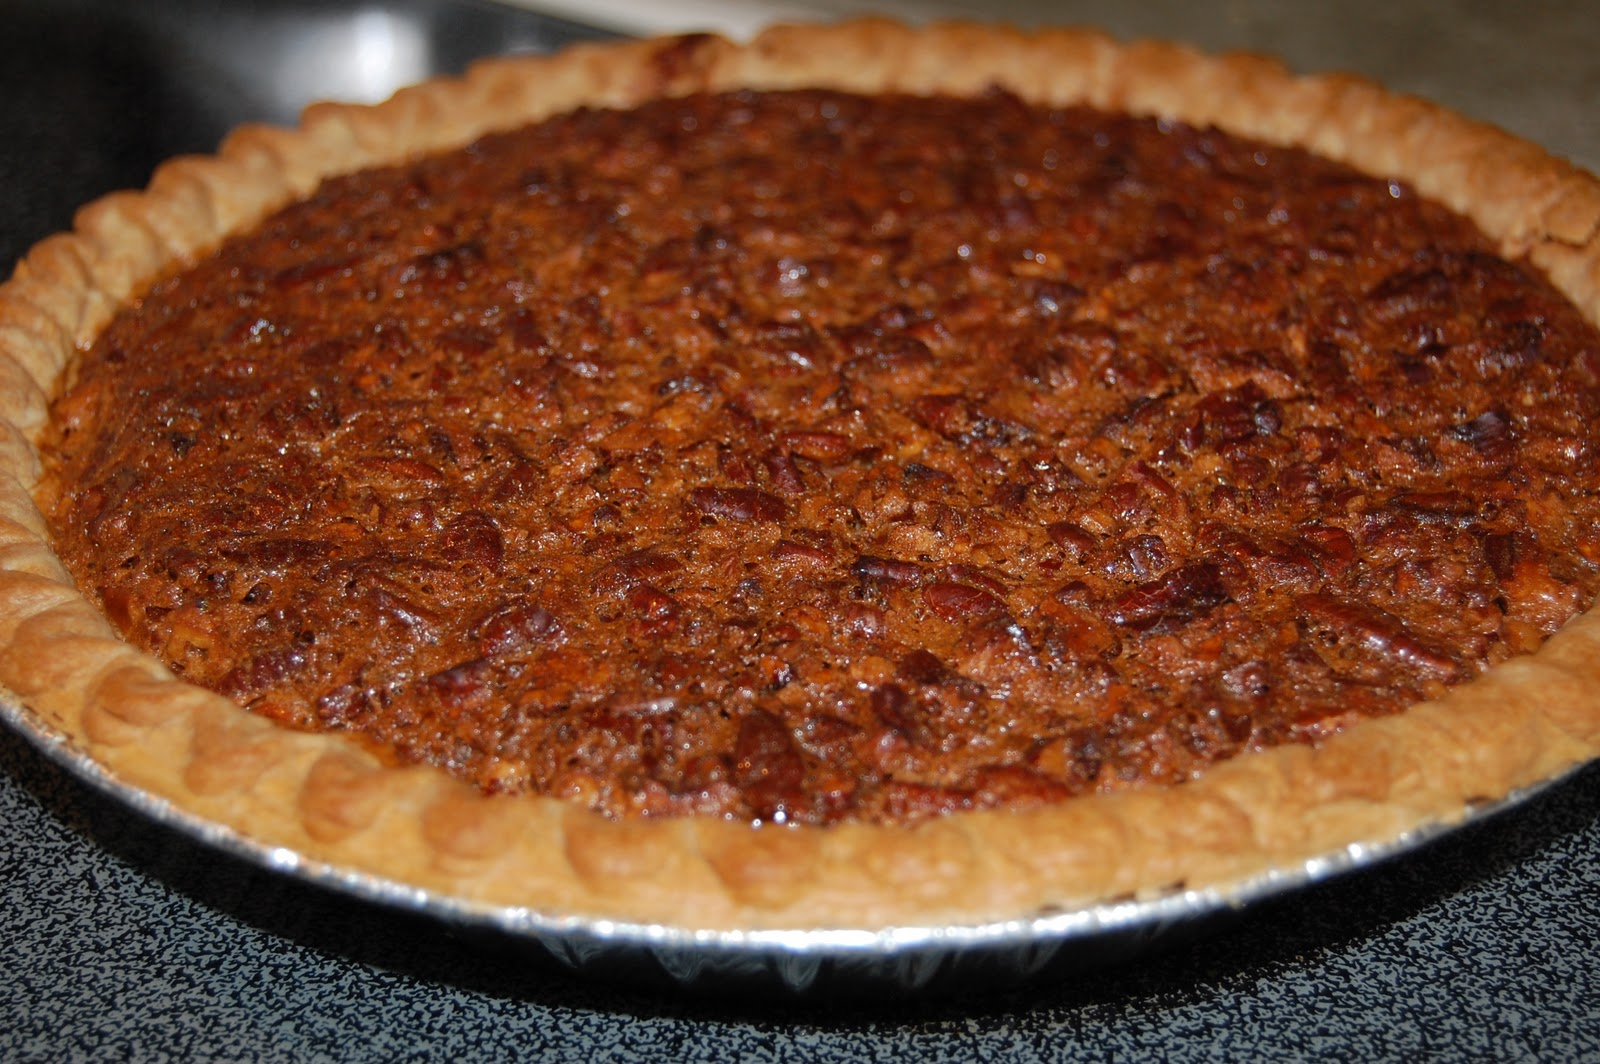 Blended Family Cookbook: Pecan Pie